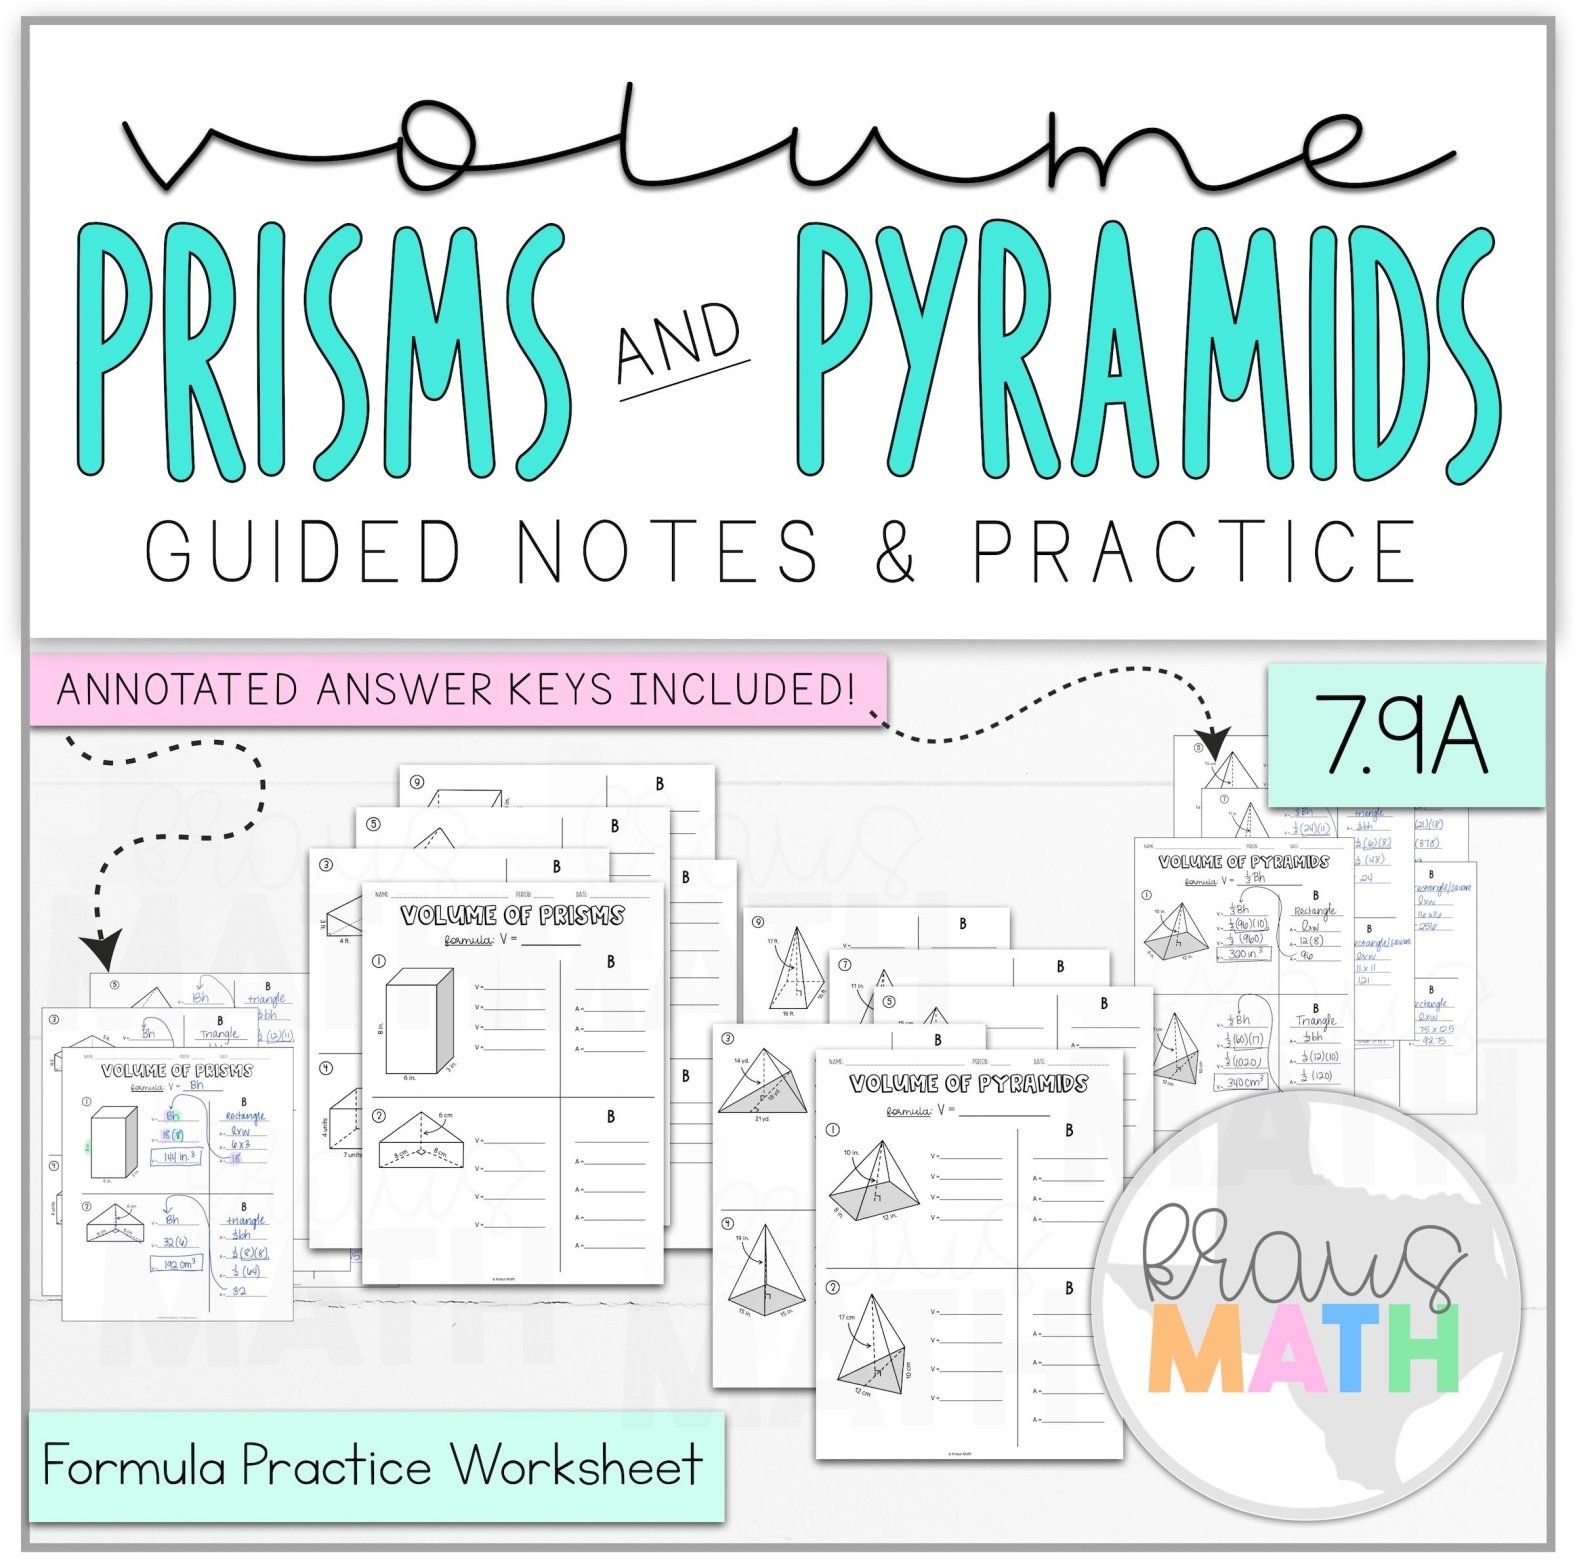 volume of triangular prisms worksheet – efectofamilia org together with Volume Of Square Pyramids Worksheets   Teaching Resources   TpT likewise prisms and pyramids worksheets moreover Volume Of Prisms Worksheet Rectangular Prism   Surface Area in addition  furthermore prisms and pyramids worksheets – slaterengineering moreover Geometry Volume Worksheets Surface Area Math Of Pyramids And Cones as well Volume Of Pyramid Worksheet Practice 5 Volumes Of Pyramids And Cones besides Volume of 3D Shapes Maths Revision   Maths Made Easy also Pyramids and Frustums   Volumes Worksheet by kevinbertman   Teaching additionally Volume of 3D Shapes Maths Revision   Maths Made Easy in addition 15  volume of pyramid worksheet   Receipts Template as well  besides  as well Volume of Prisms   Pyramids Guided Worksheet BUNDLE  TEKS 7 9A furthermore . on volume of a pyramid worksheet